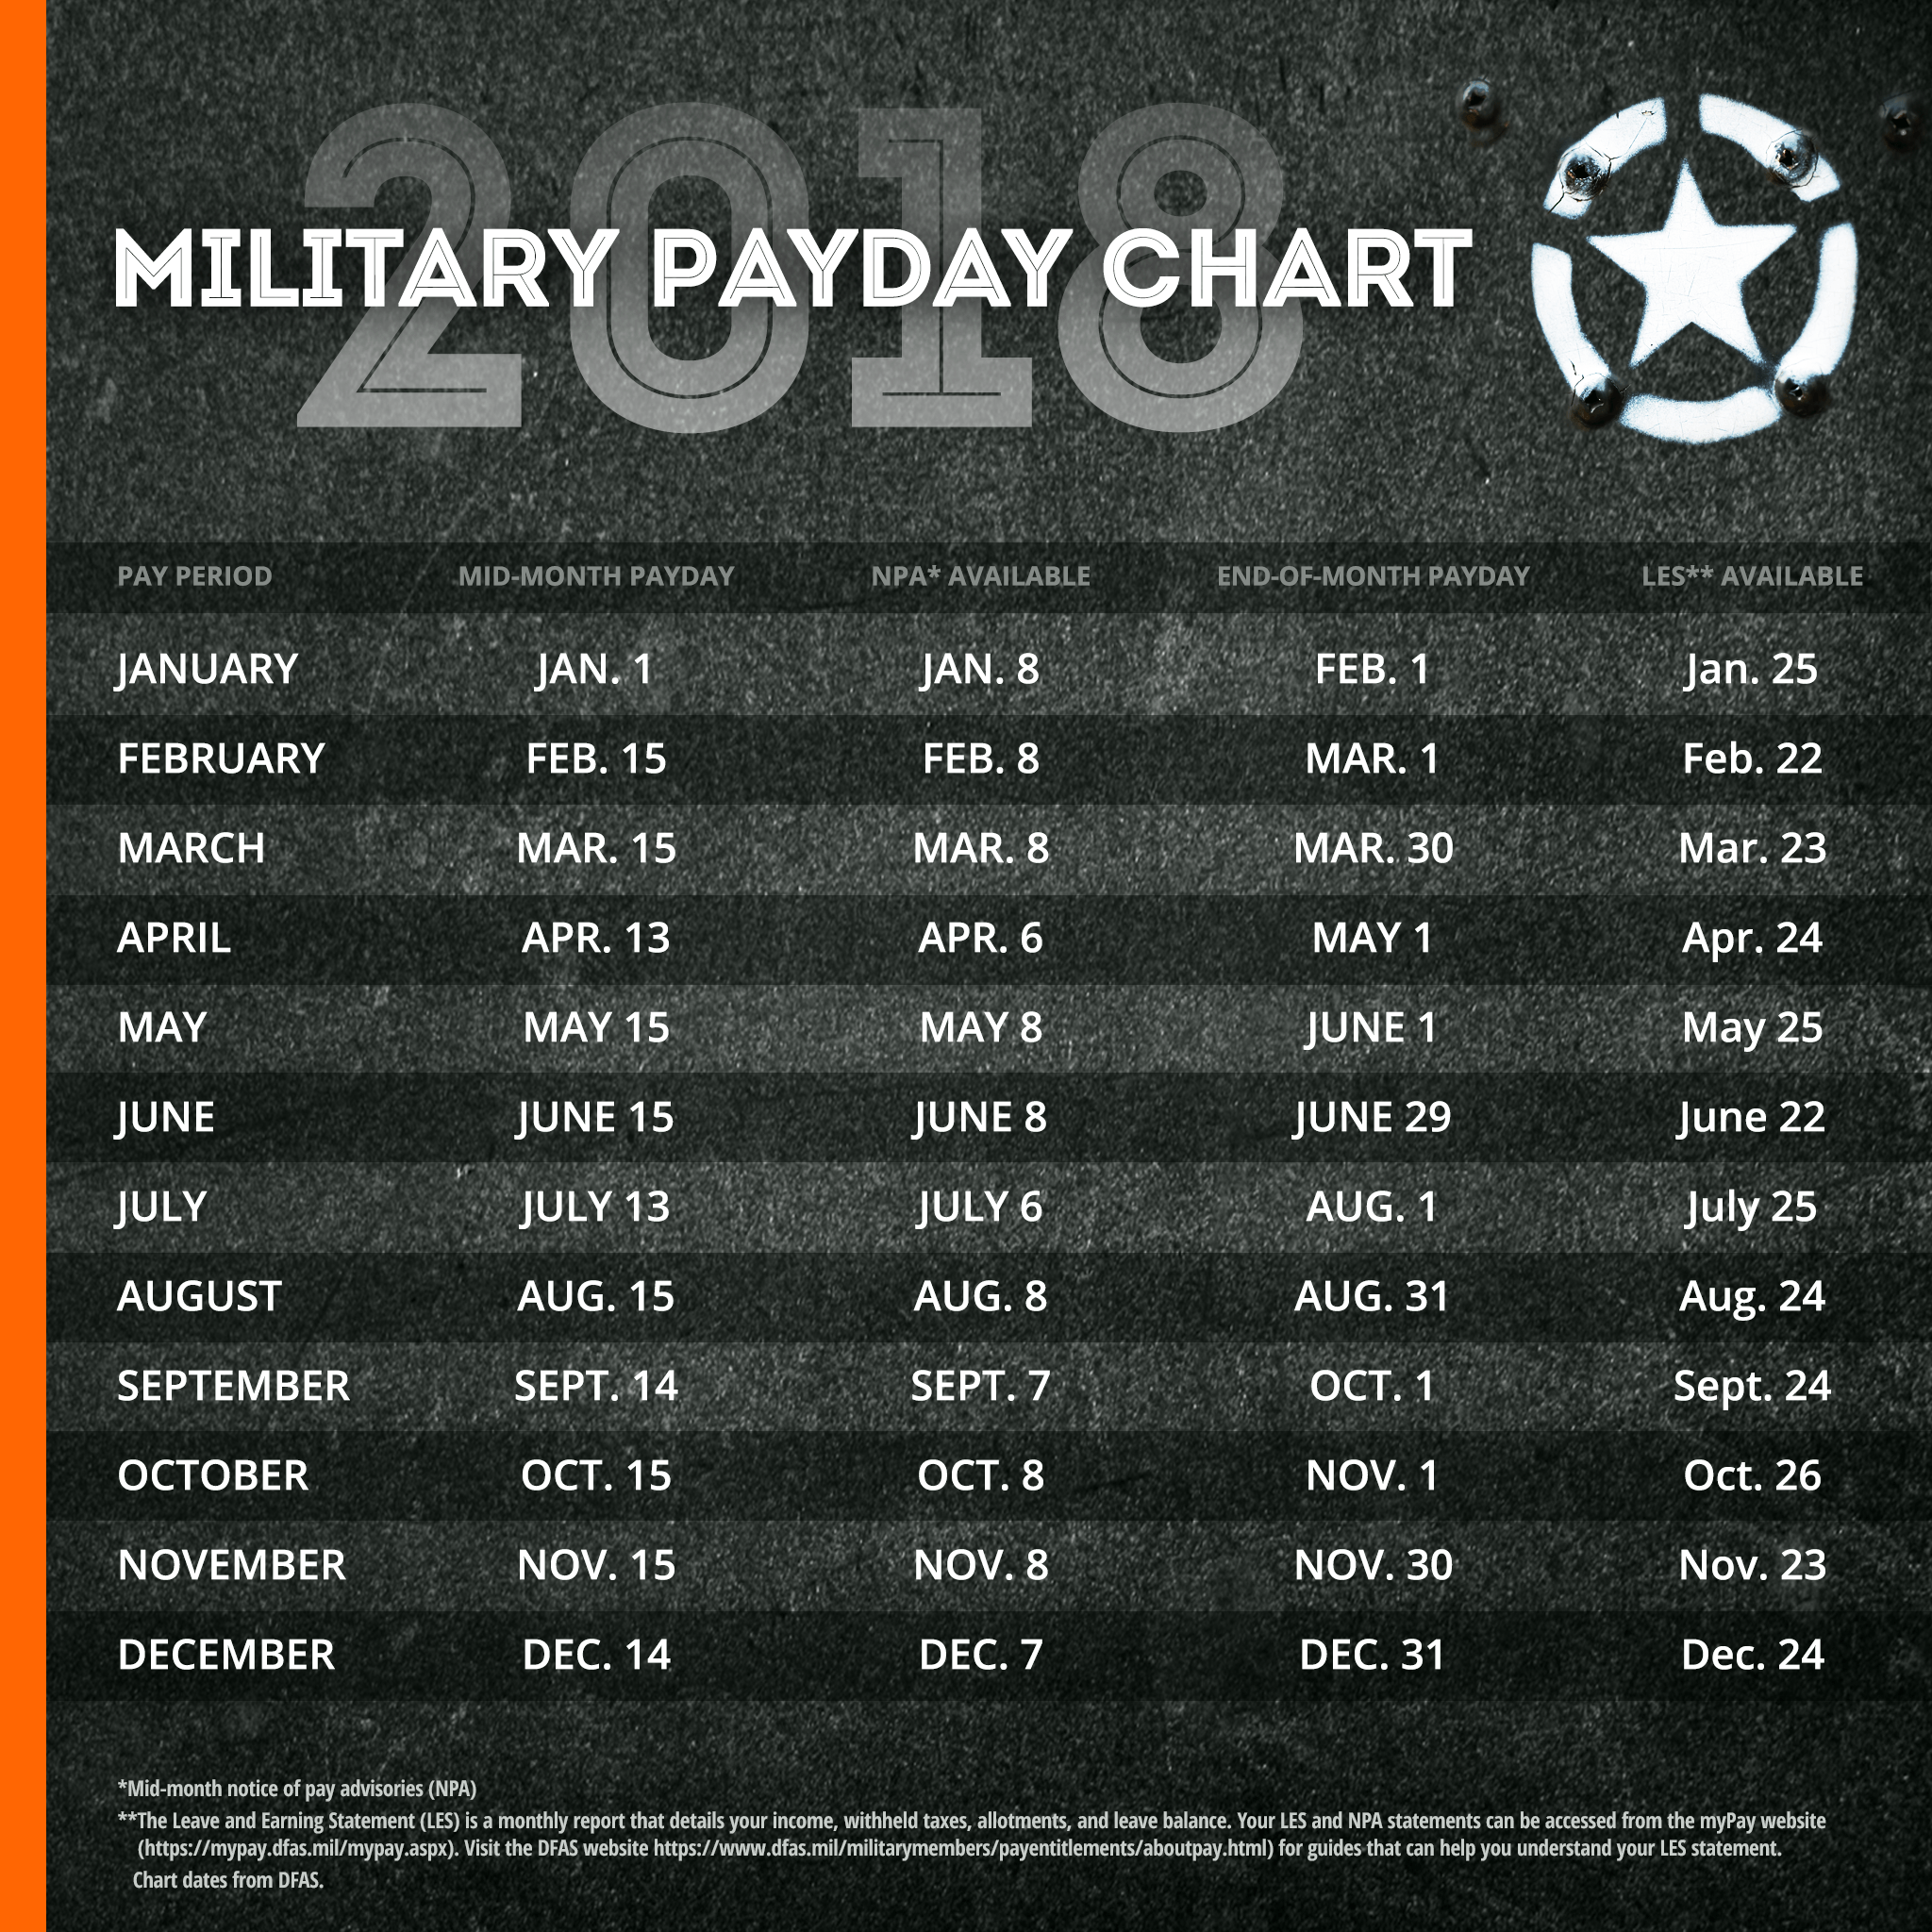 2018 Military Paydays Omni Financial Payday Military